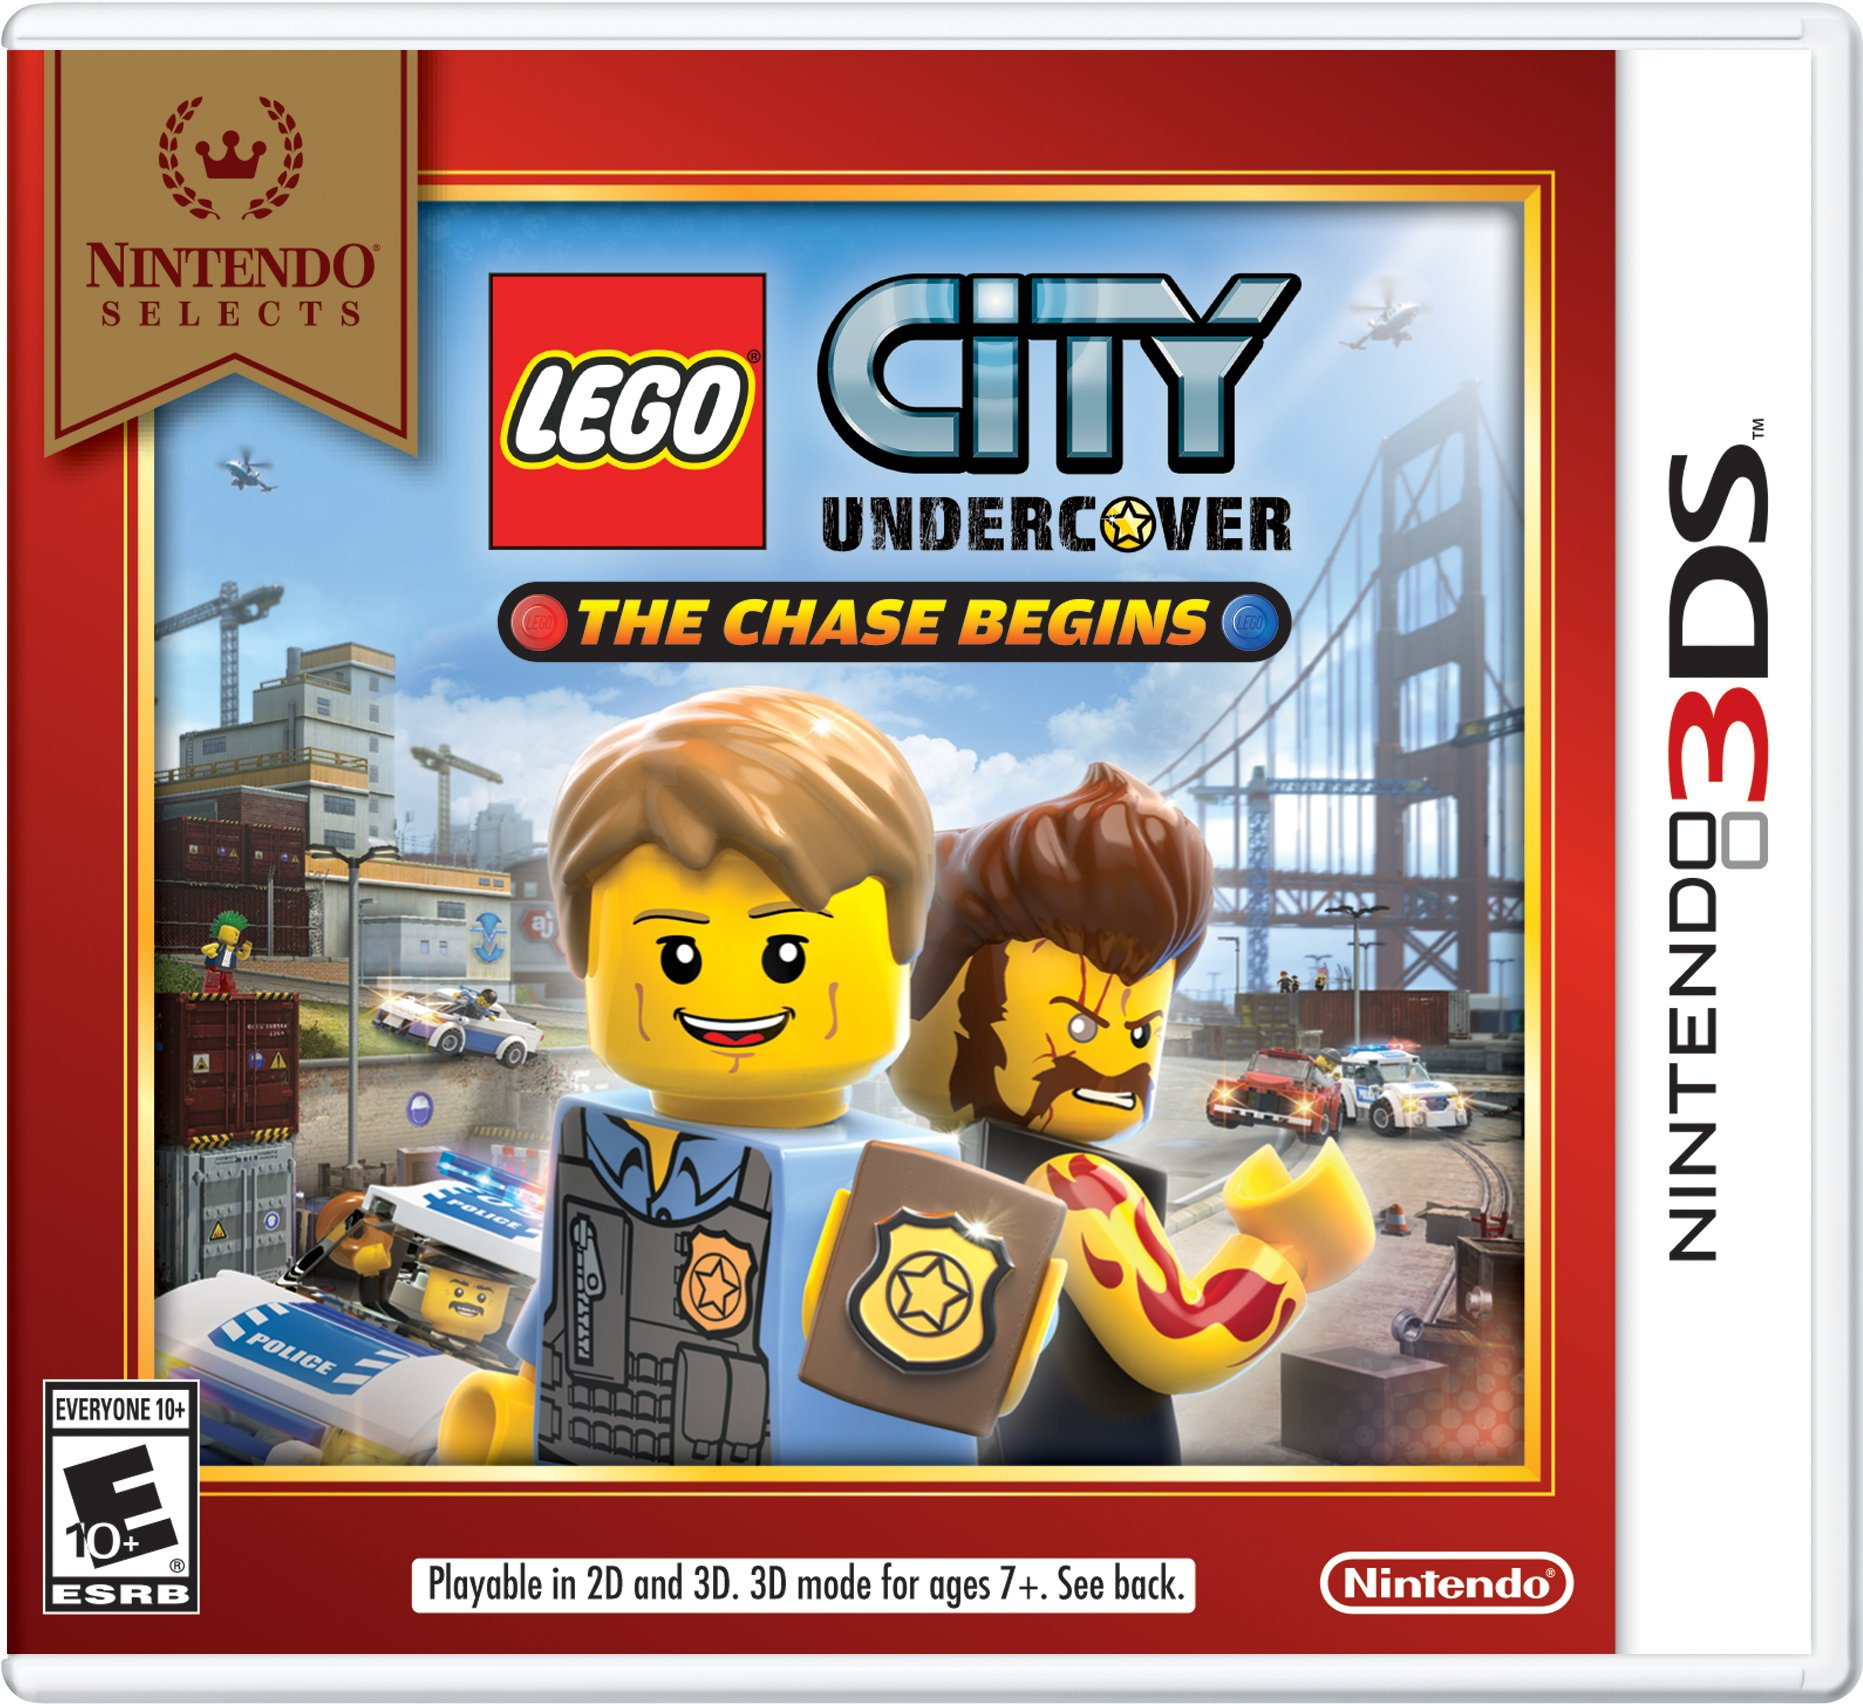 Amazoncom Nintendo Selects Lego City Undercover The Chase Begins